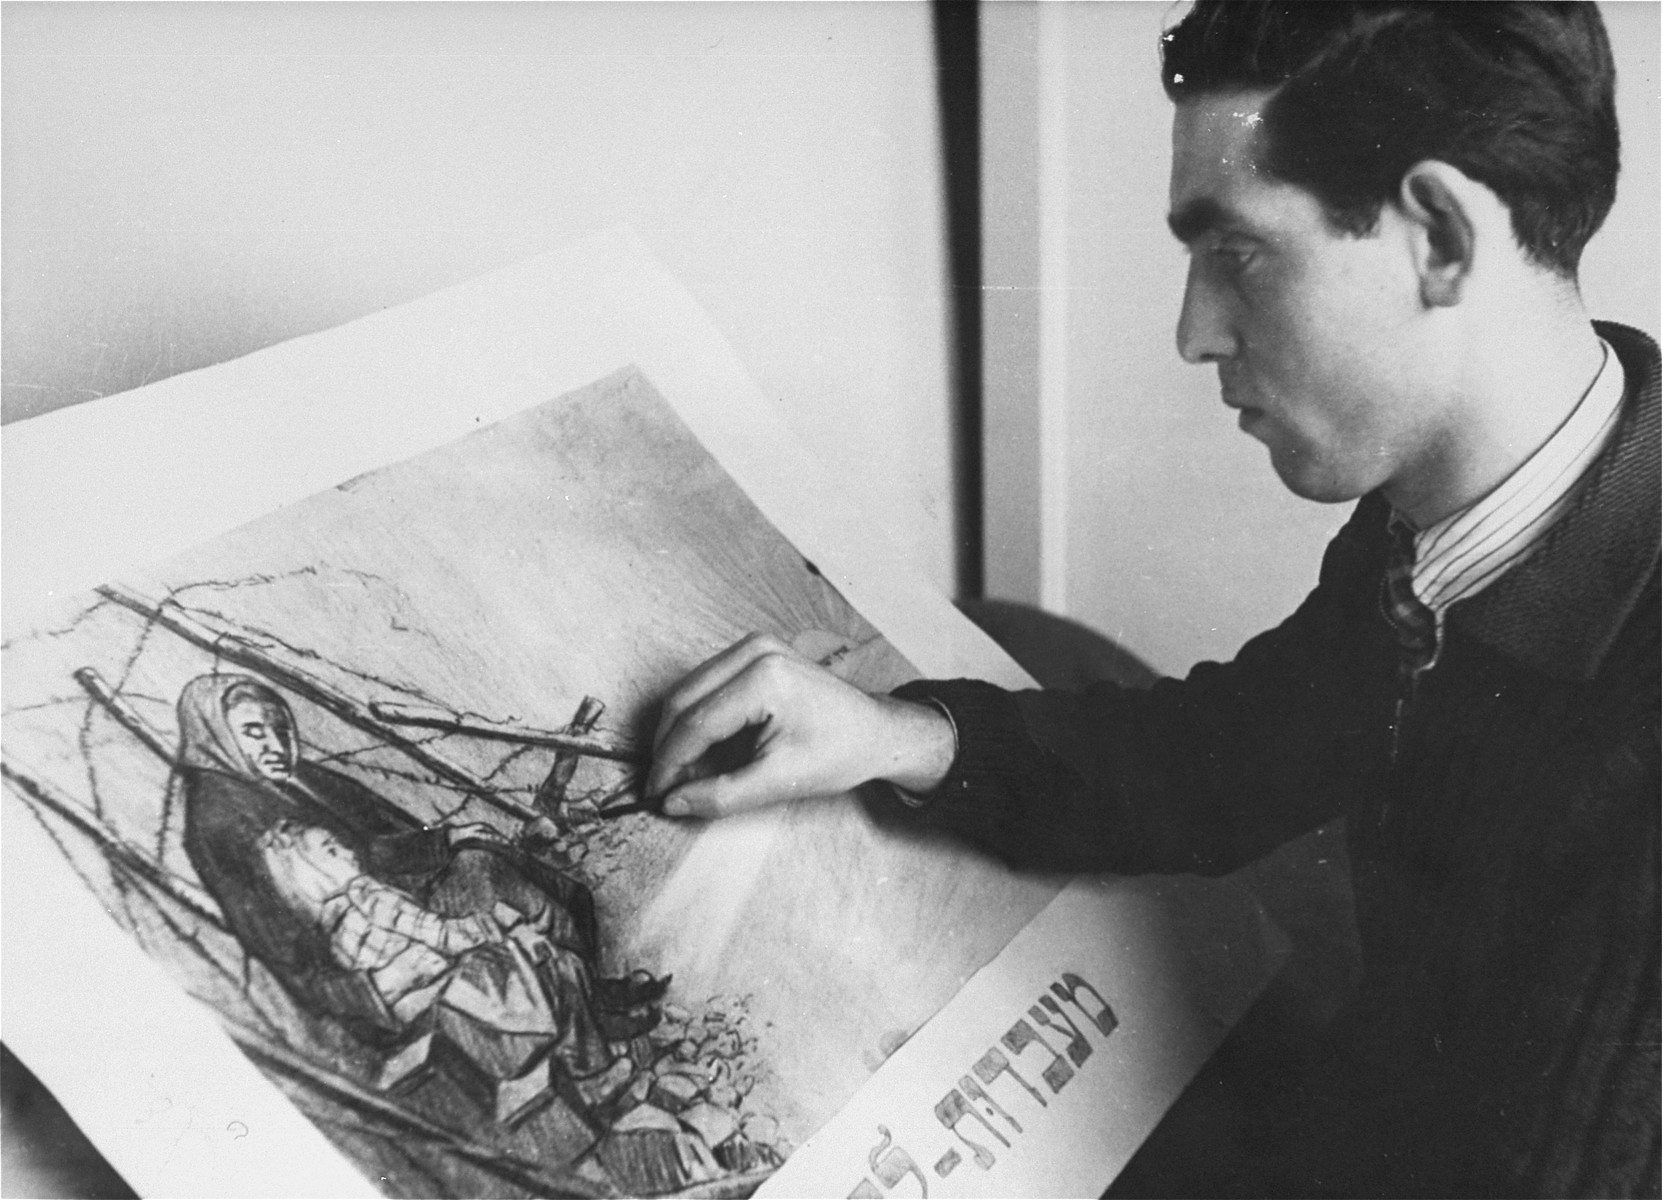 """Metzger, a young artist in the Landsberg displaced persons' camp, works on a charcoal drawing entitled """"From Slavery to Freedom""""."""